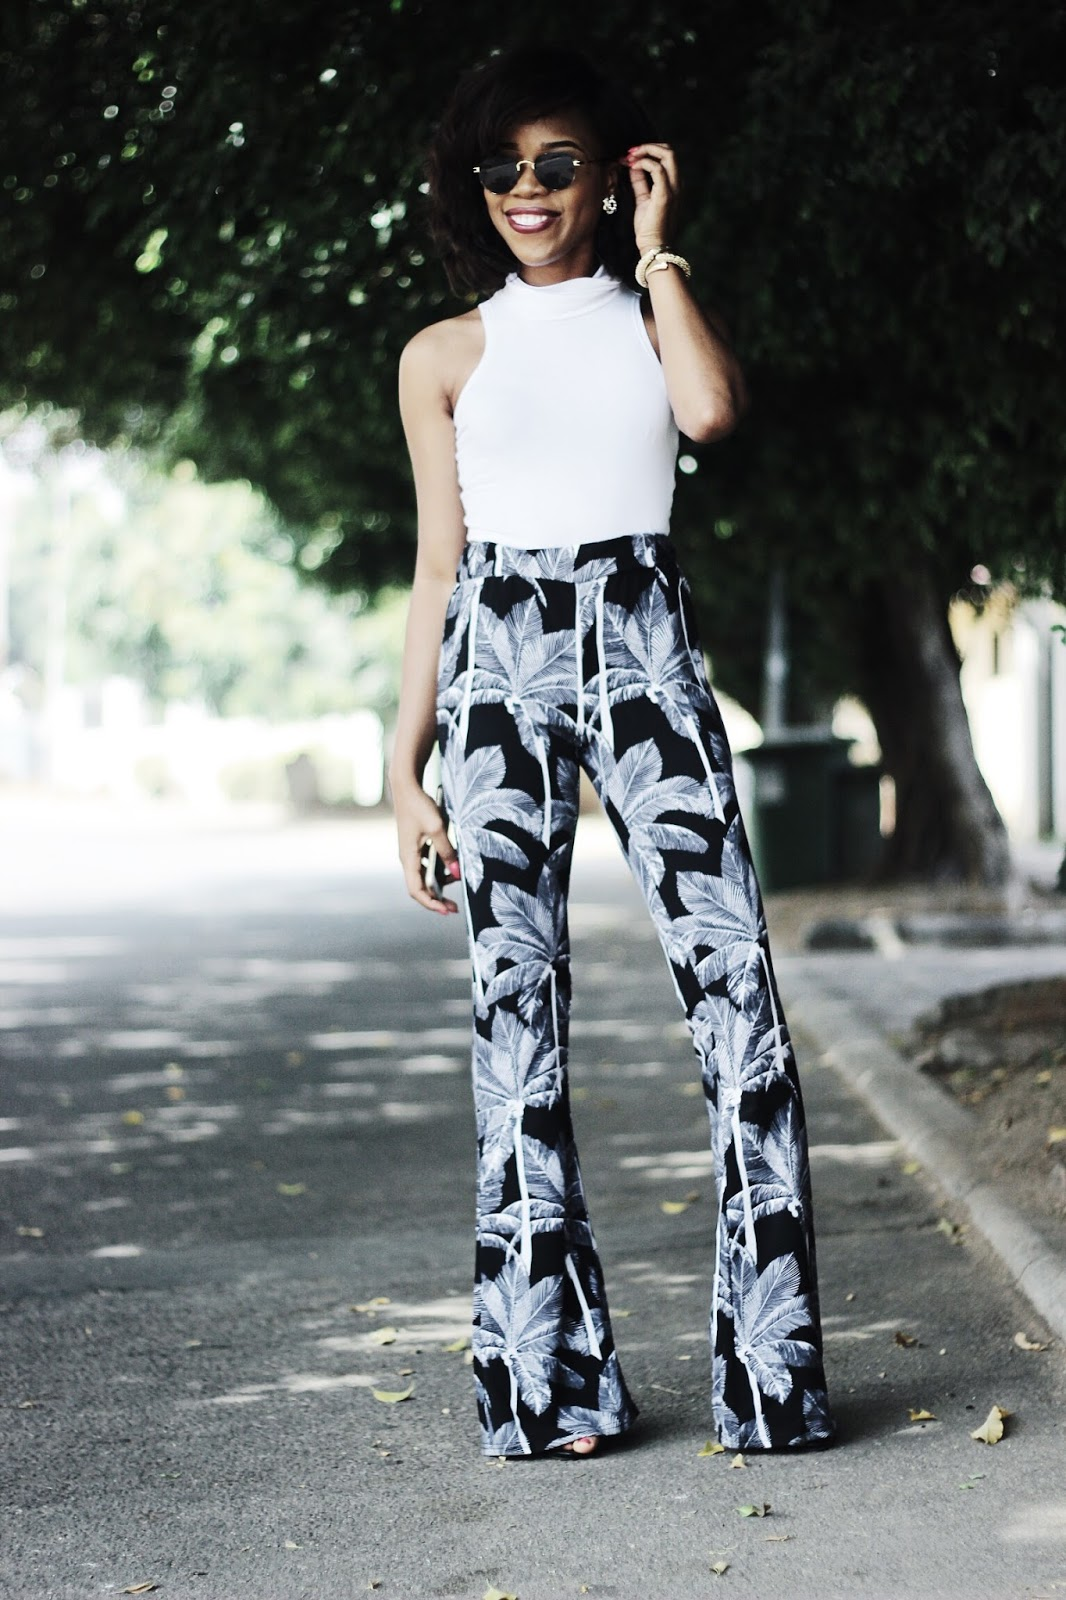 PRINT FLARE PANT TREND